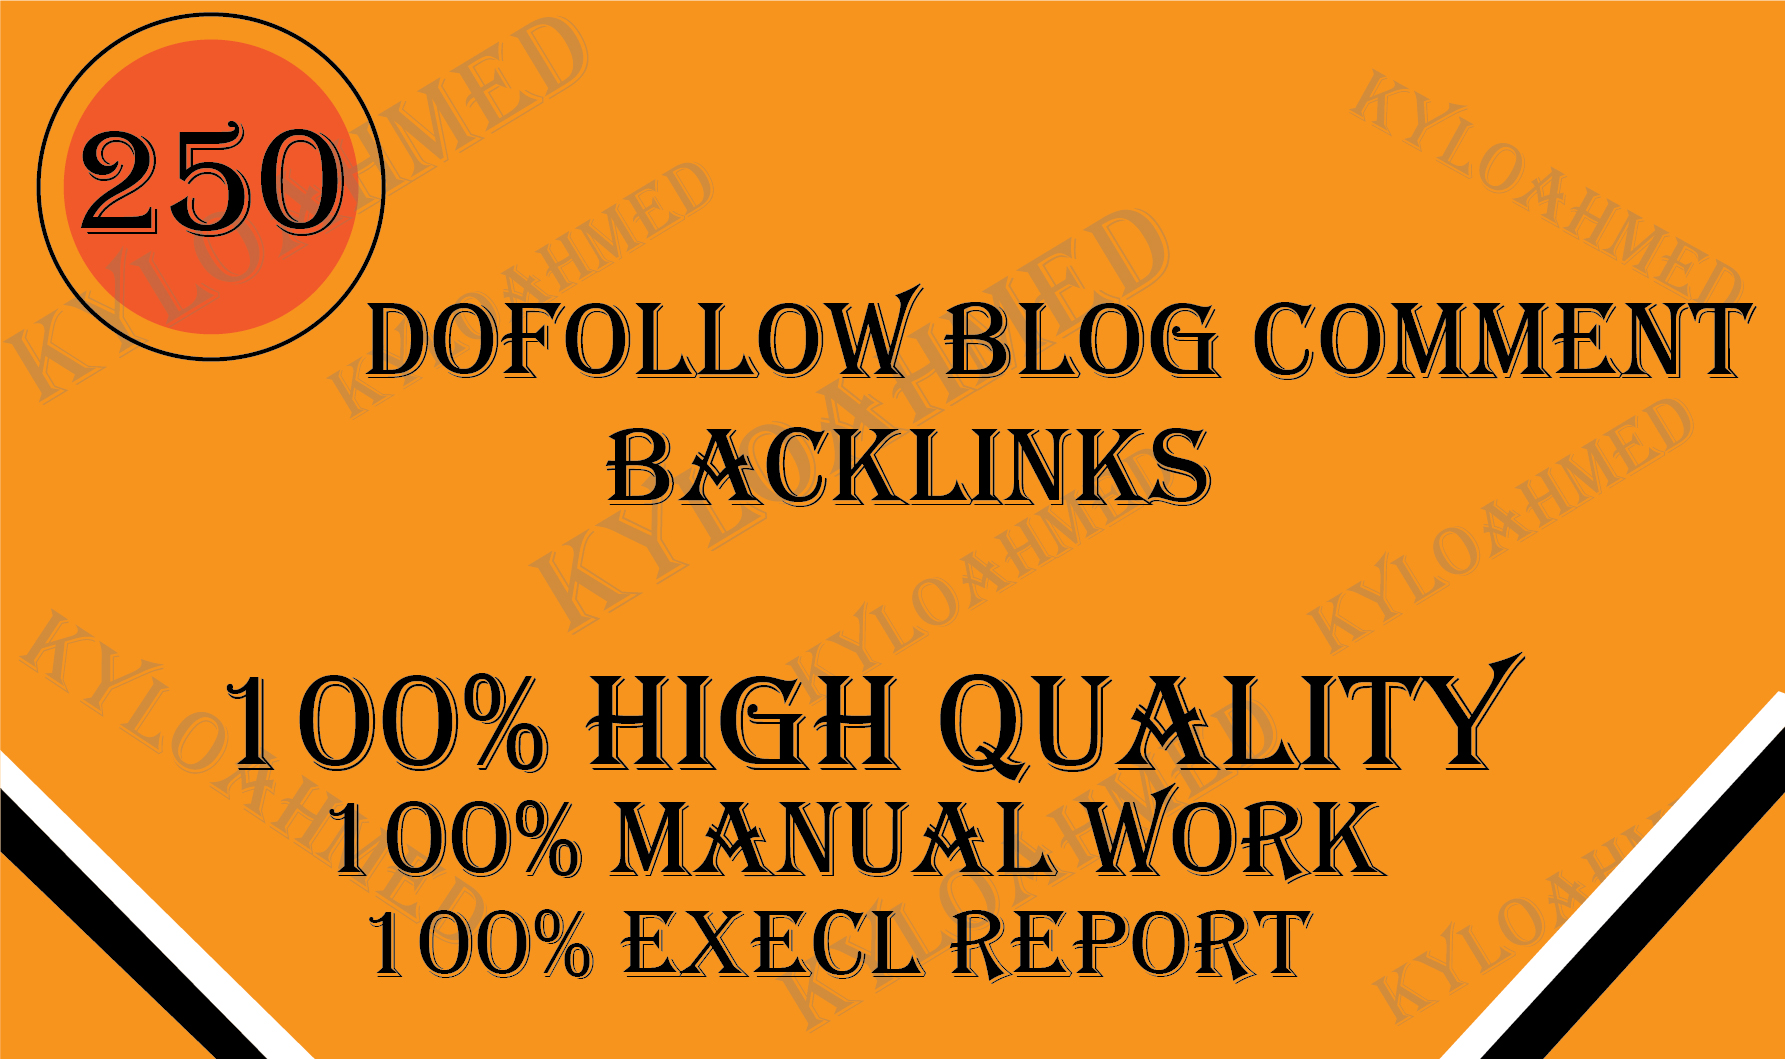 I will provide 250 dofollow blog comment high quality backlinks